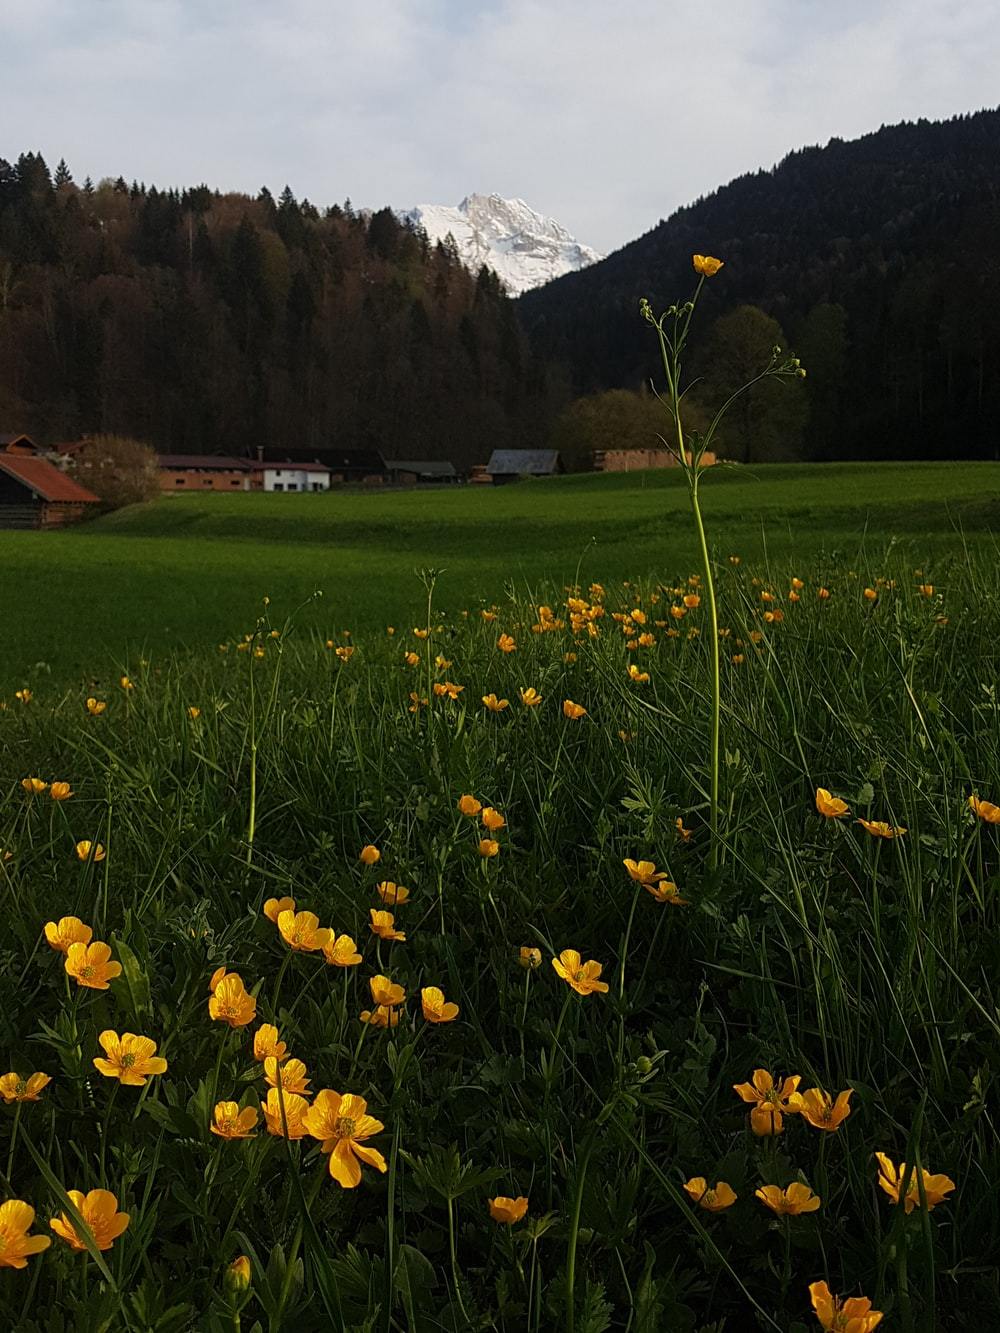 yellow flowers on green grass field near brown mountains during daytime